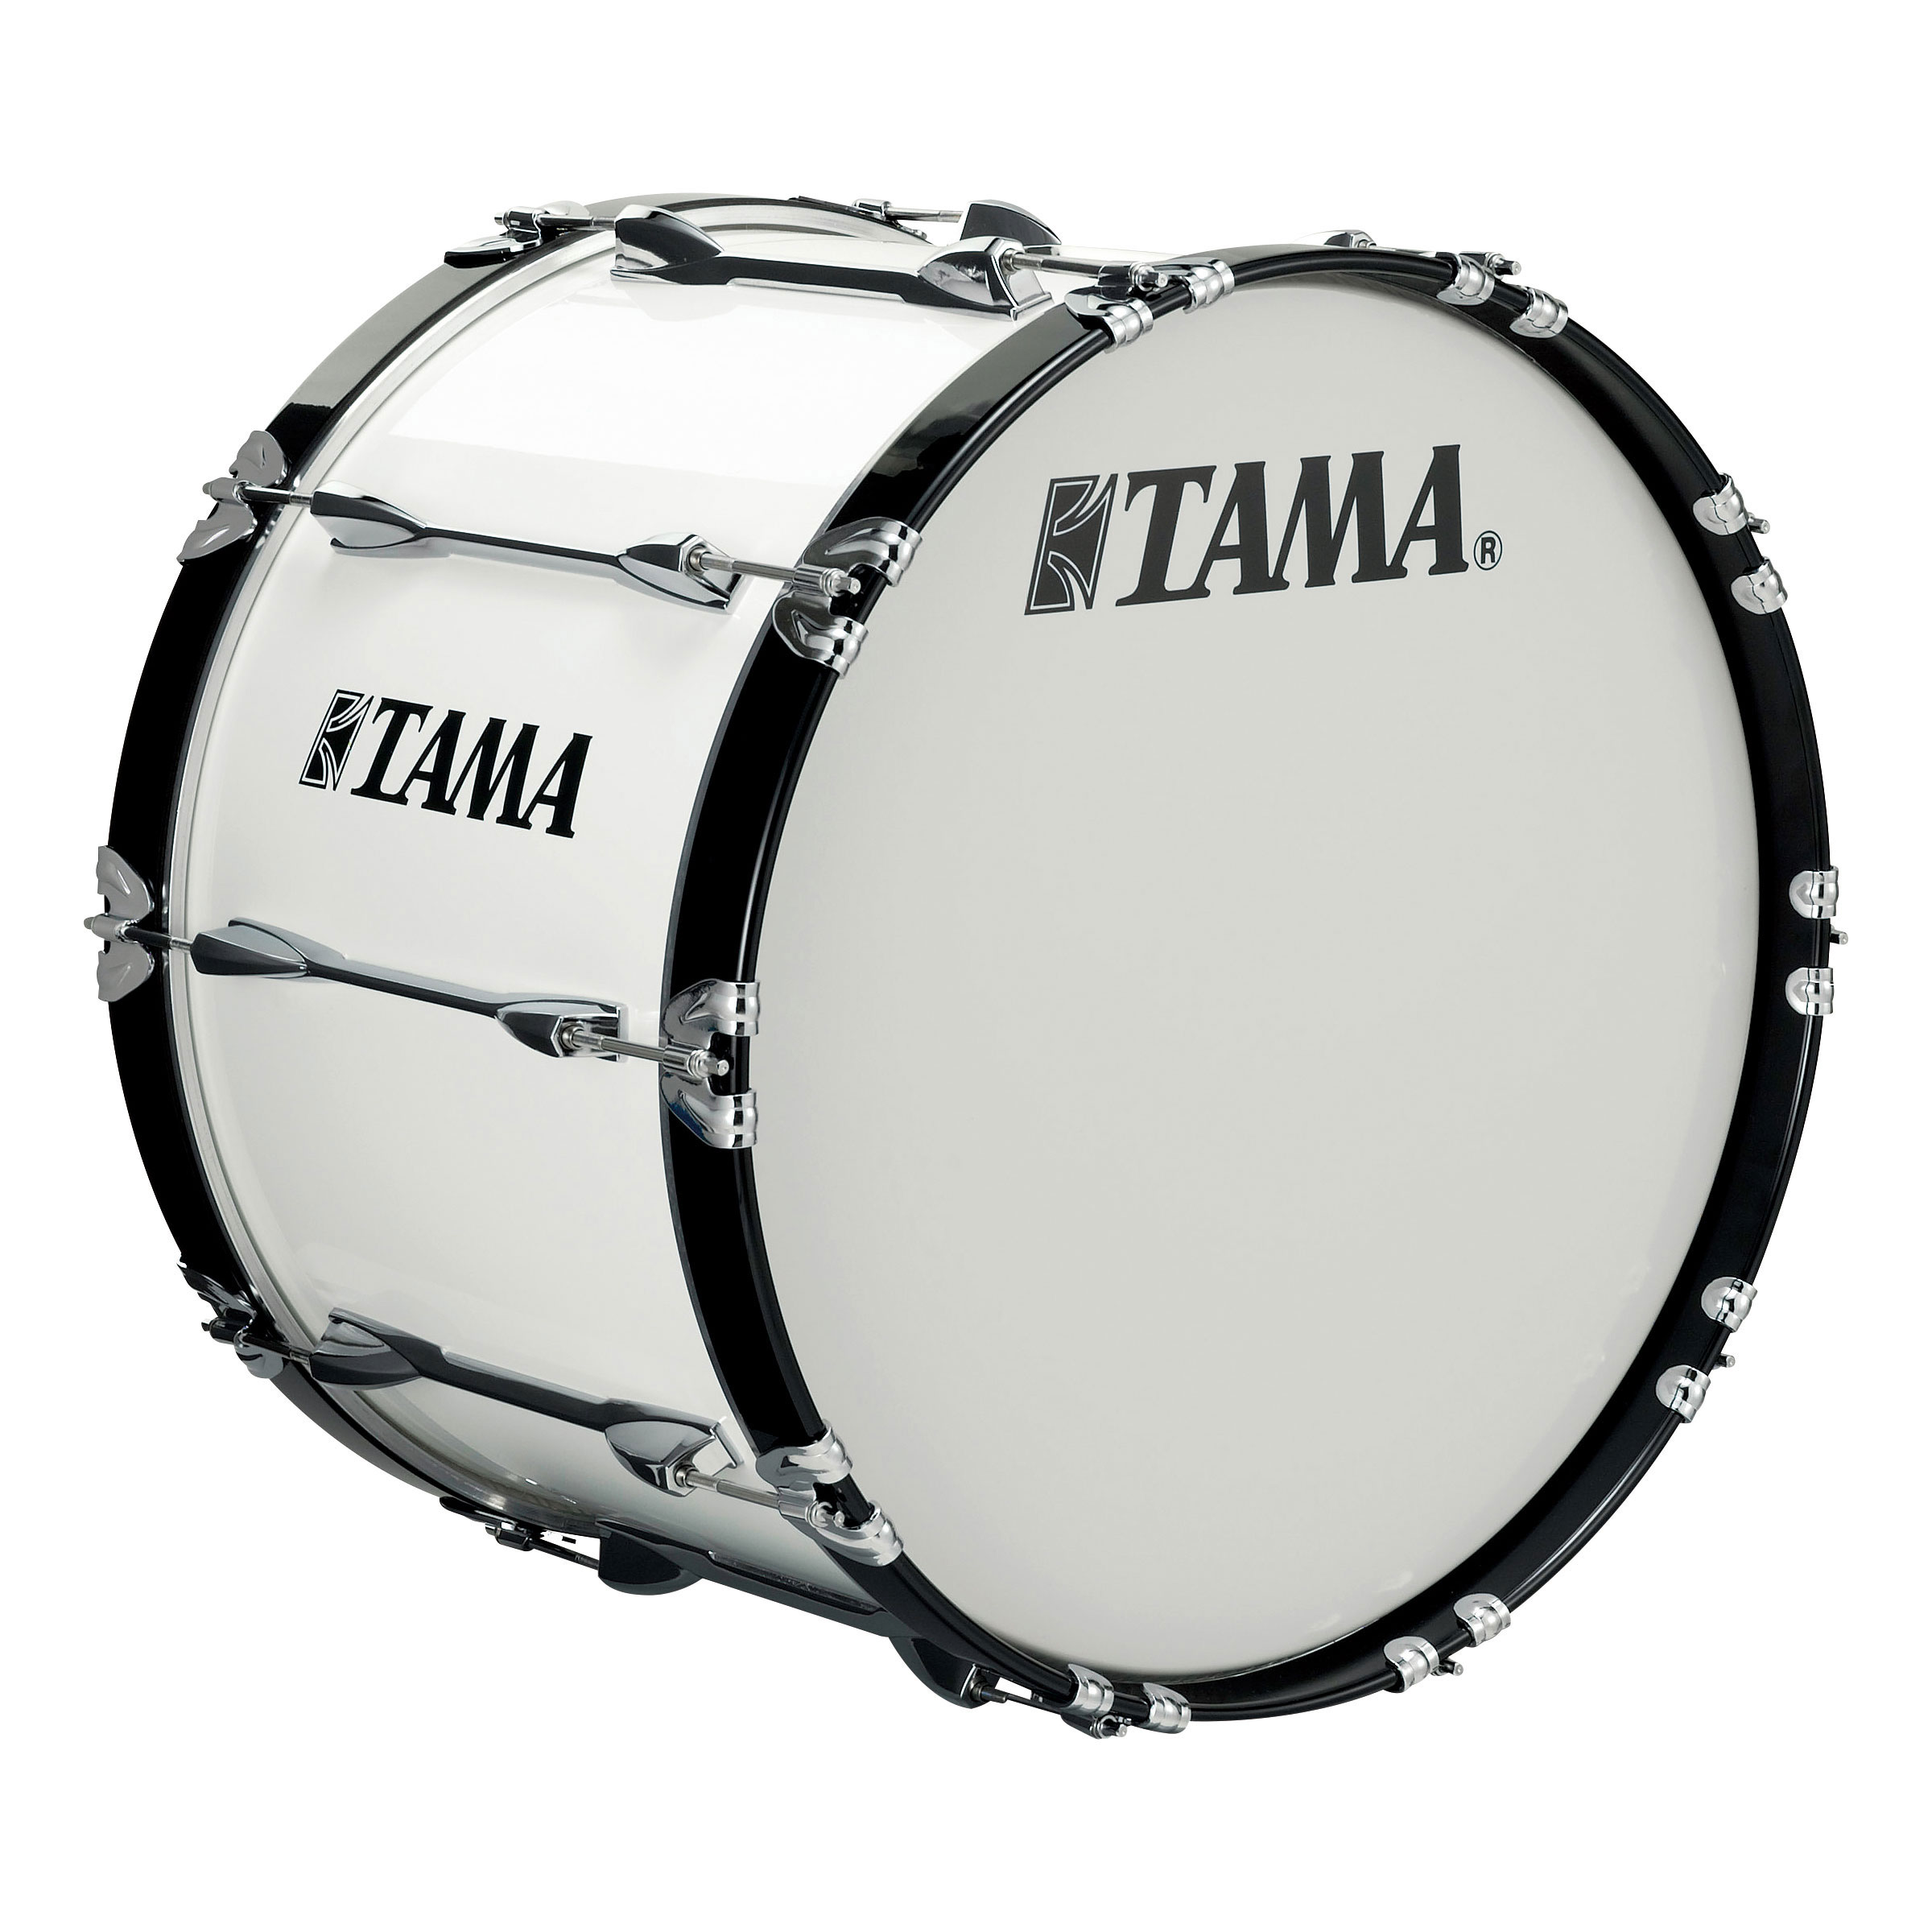 "Tama 24"" StarLight Marching Bass Drum in Sugar White Wrap"